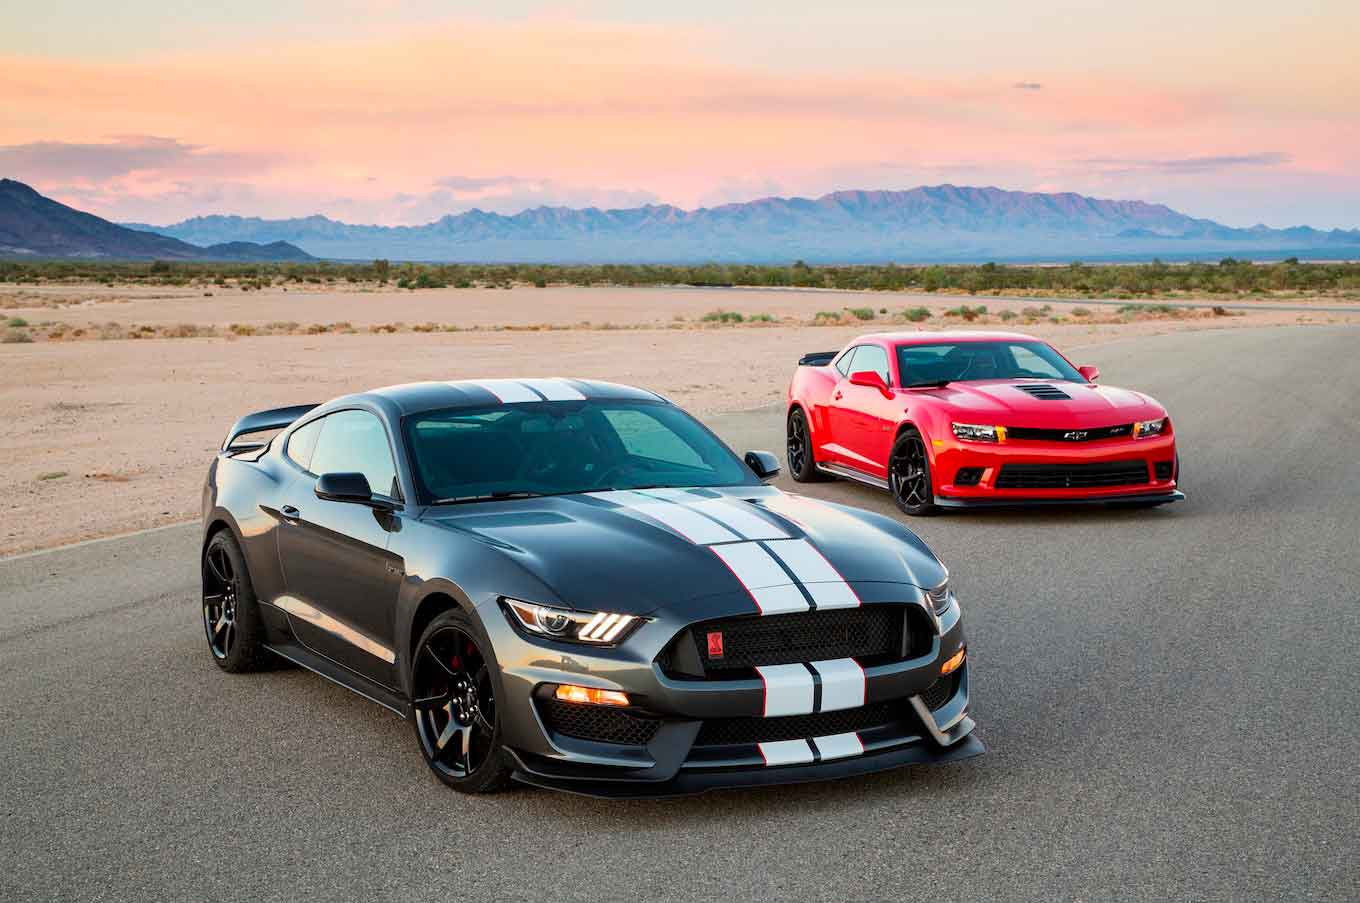 camaro vs mustang Camaro vs mustang: breaking down the great american pony car rivalry it's one of the oldest and best rivalries among american automakers ever since the 1960s, the ford mustang and chevrolet camaro have squared off for pony car dominance.